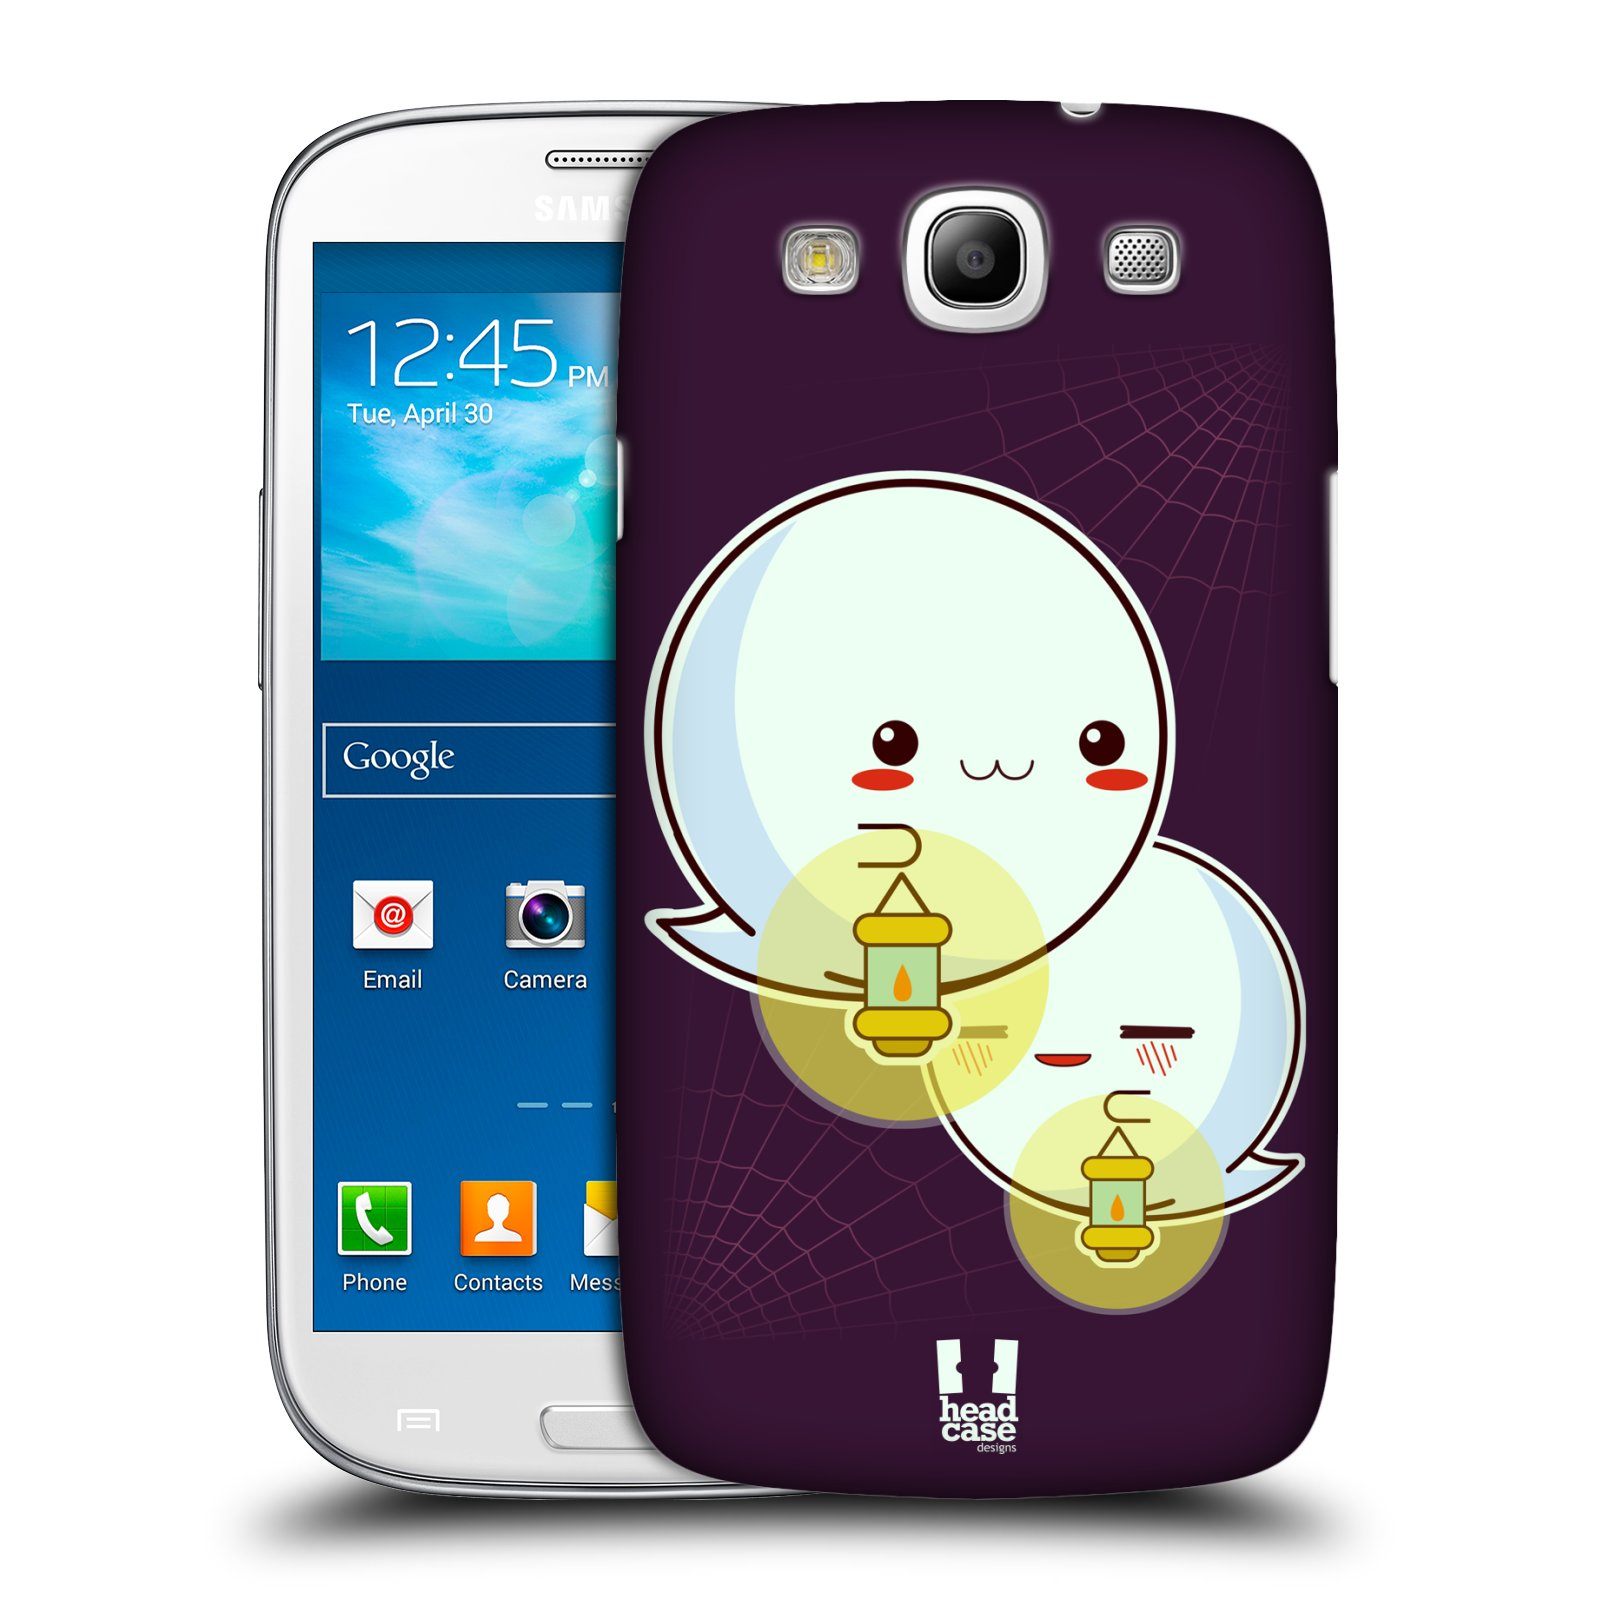 HEAD CASE DESIGNS HALLOWEEN KAWAII CASE FOR SAMSUNG GALAXY S3 III I9300